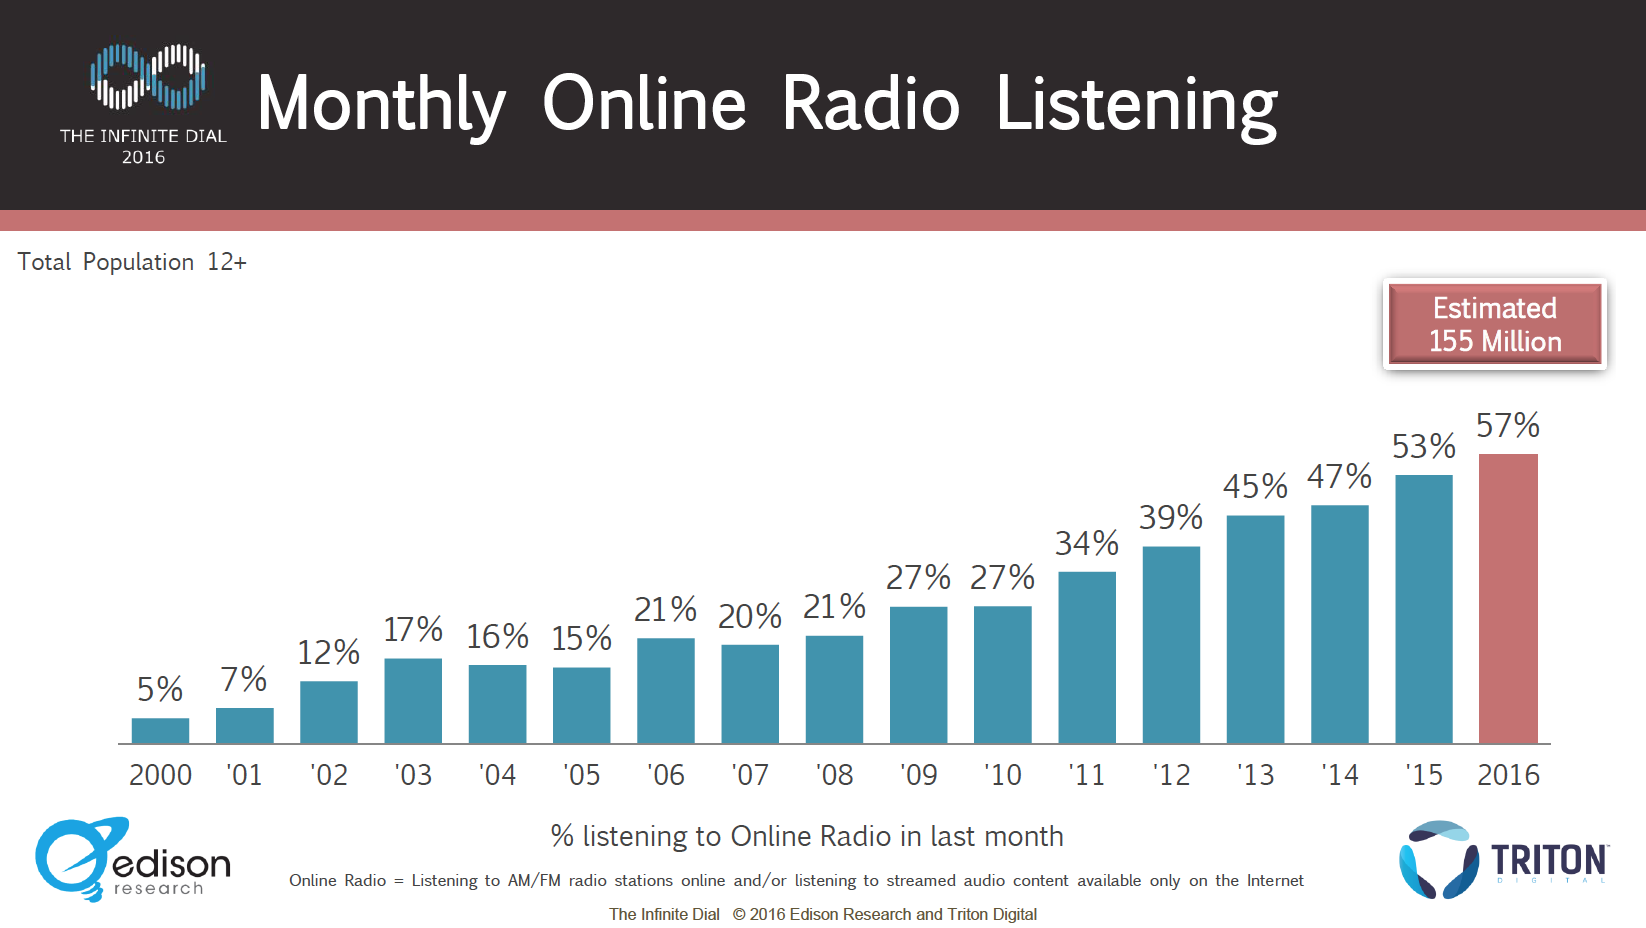 Monthly Online Radio Listening